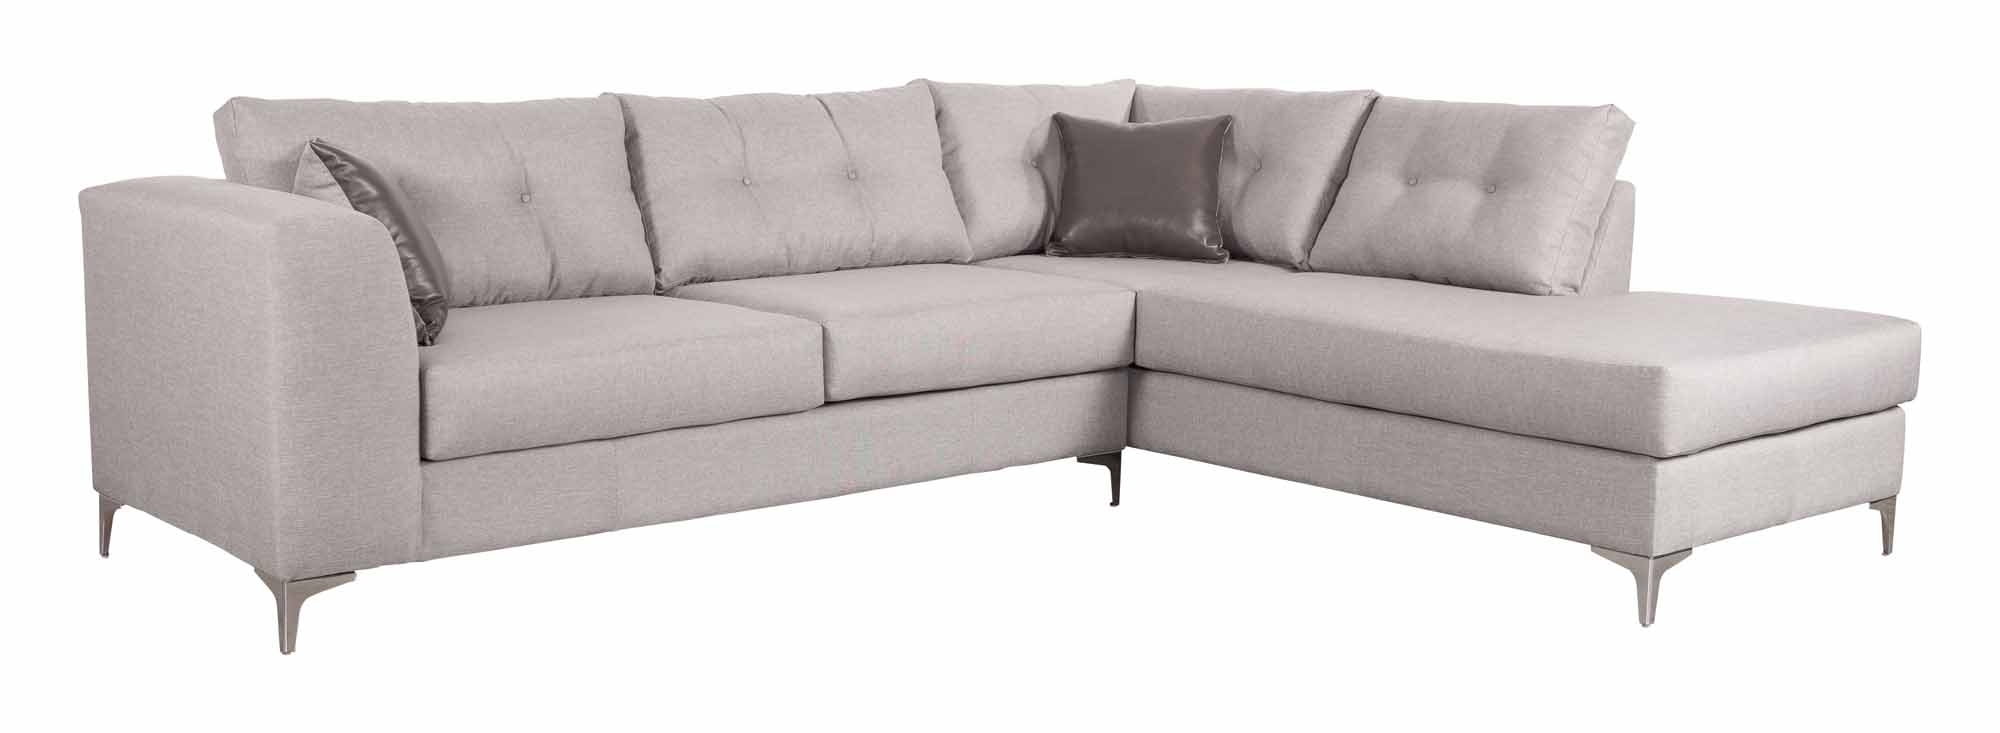 Memphis Sectional Rhf Smokezuo Modern Intended For Memphis Sectional Sofas (Image 4 of 10)